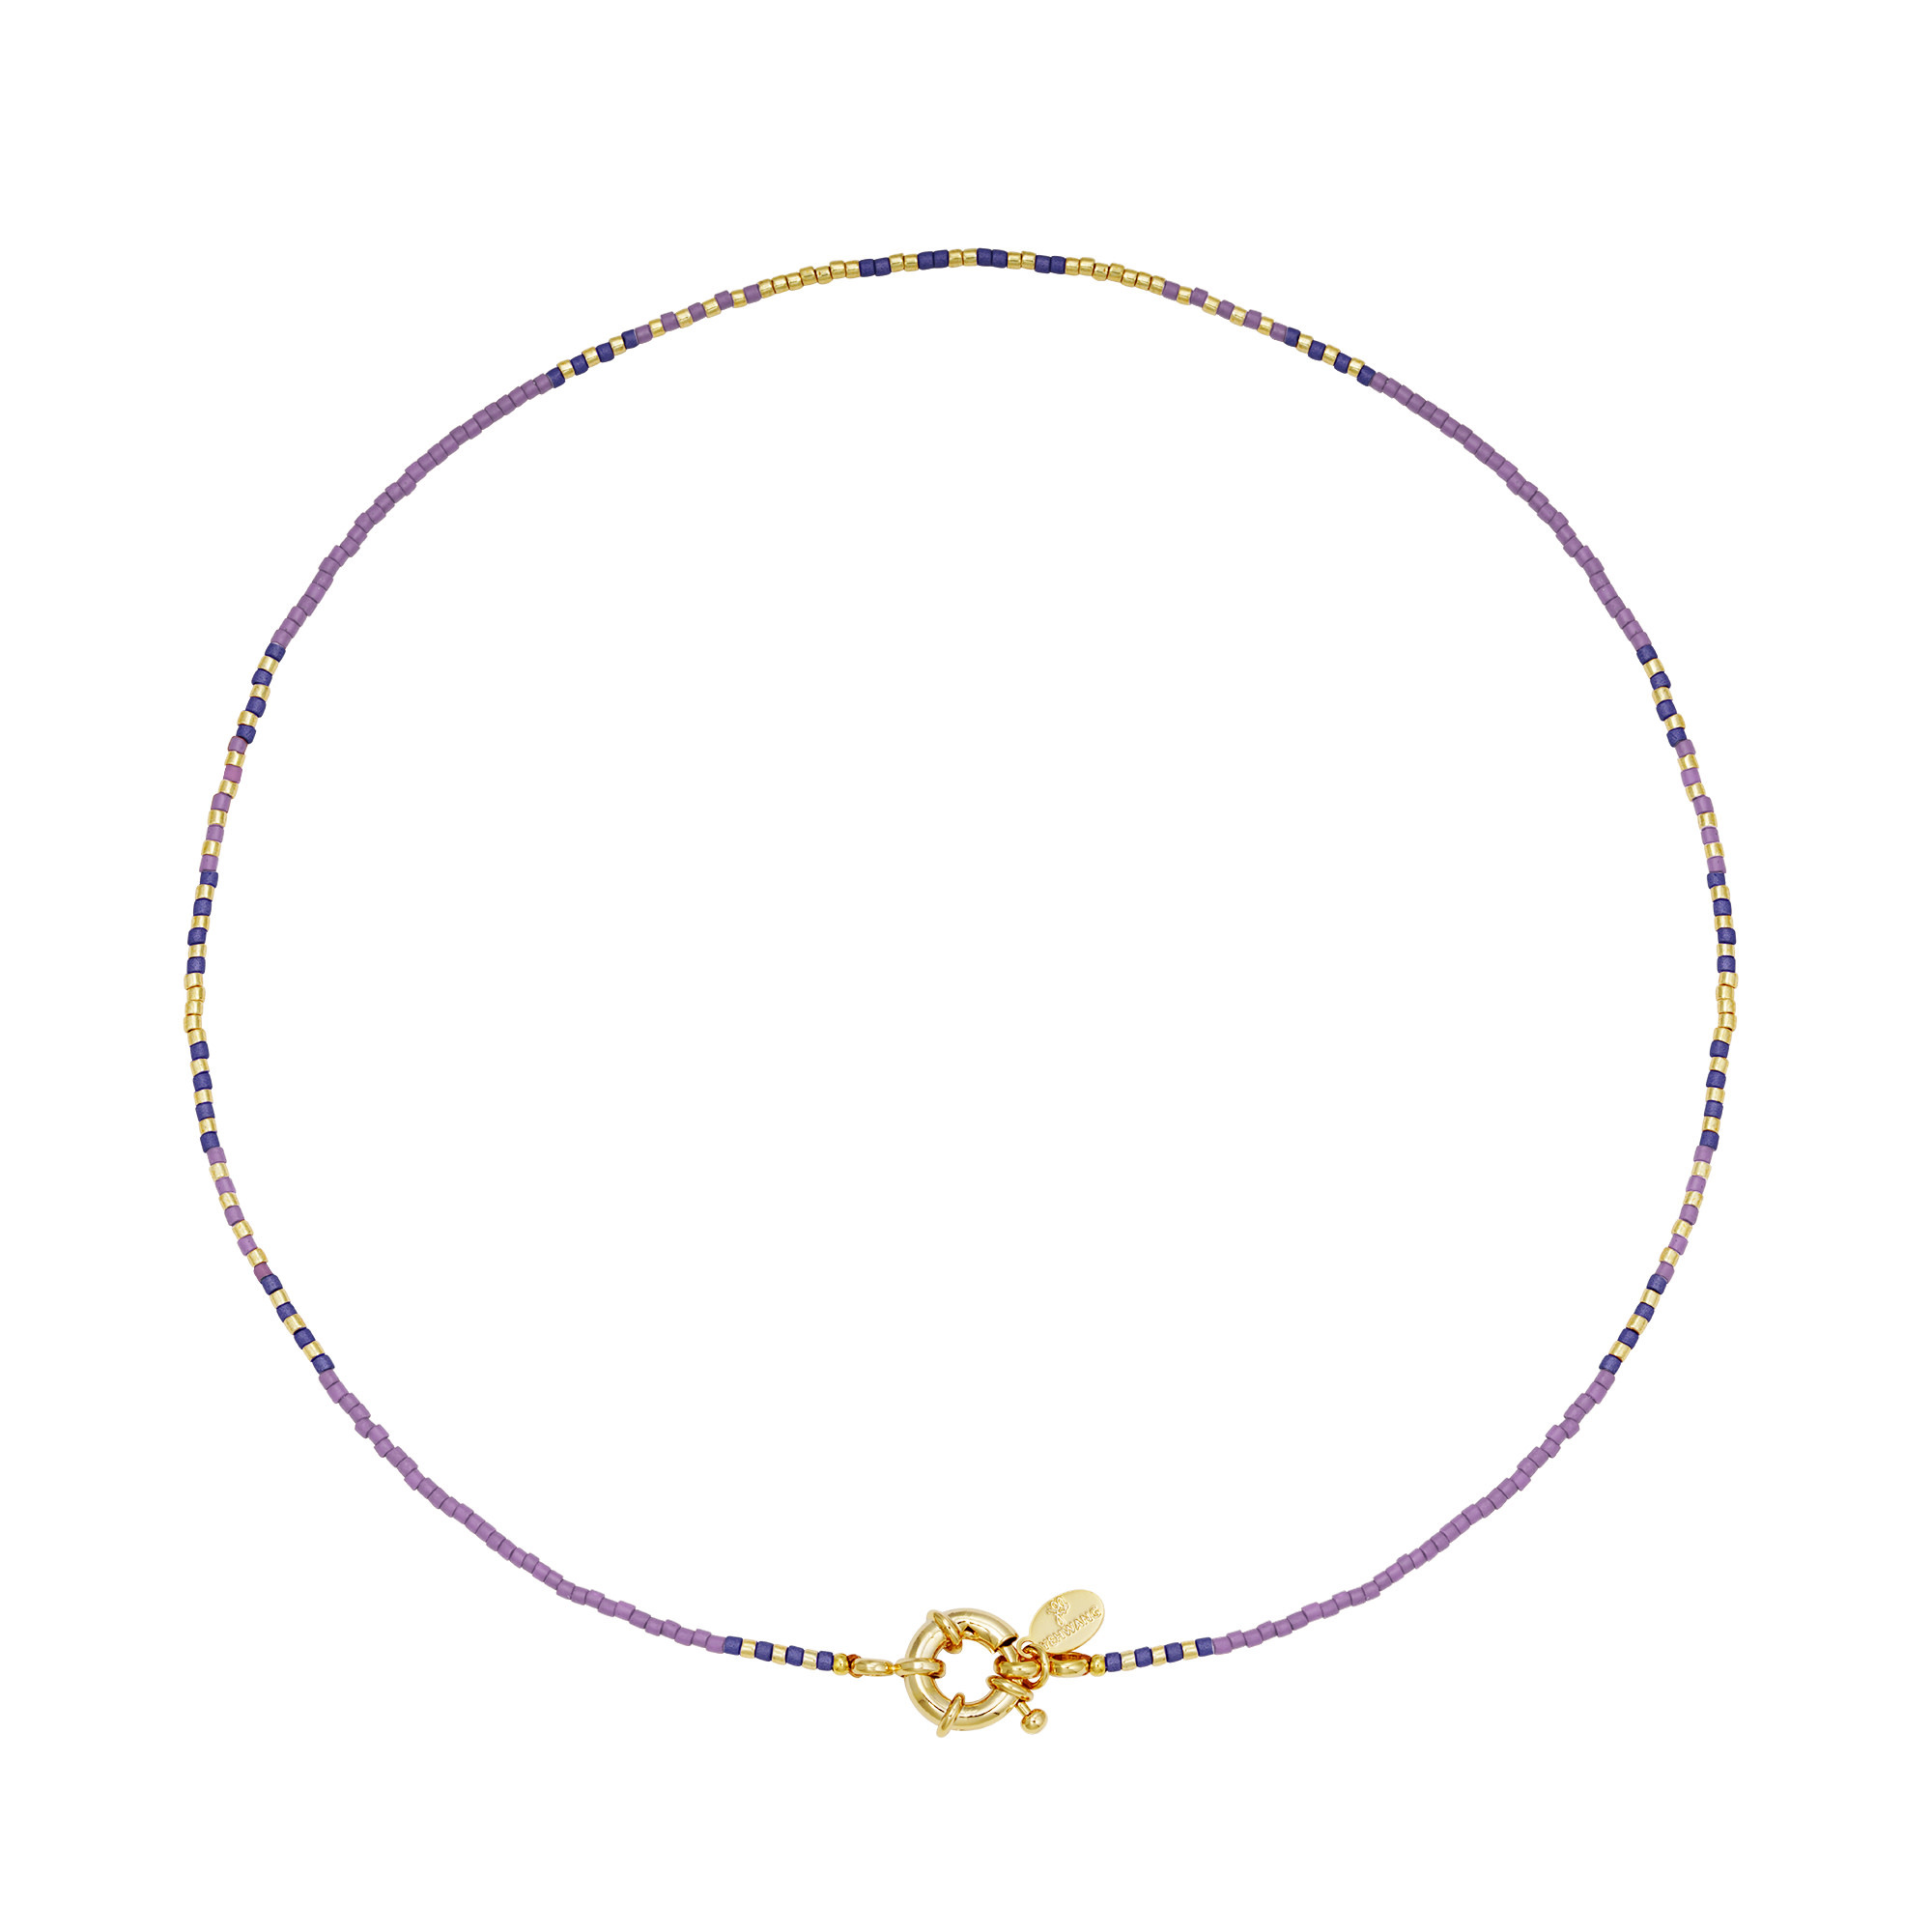 With love Necklace delicate -violet